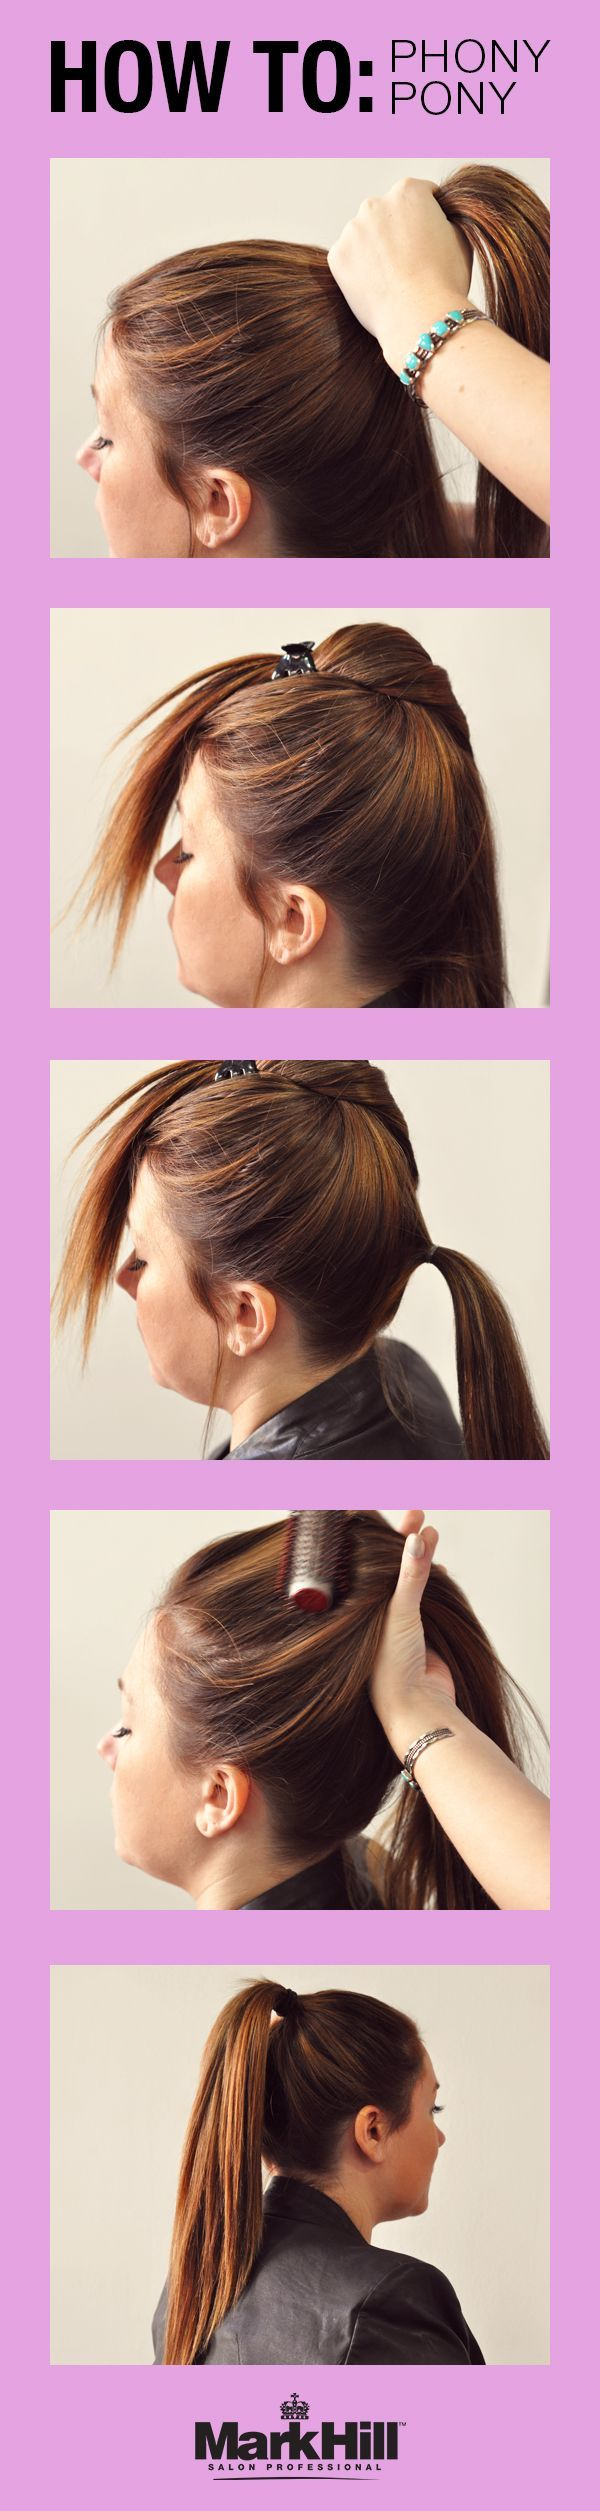 Get a longer, fuller ponytail with this quick hair trick. #fullerponytail Get a longer, fuller ponytail with this quick hair trick. #fullerponytail